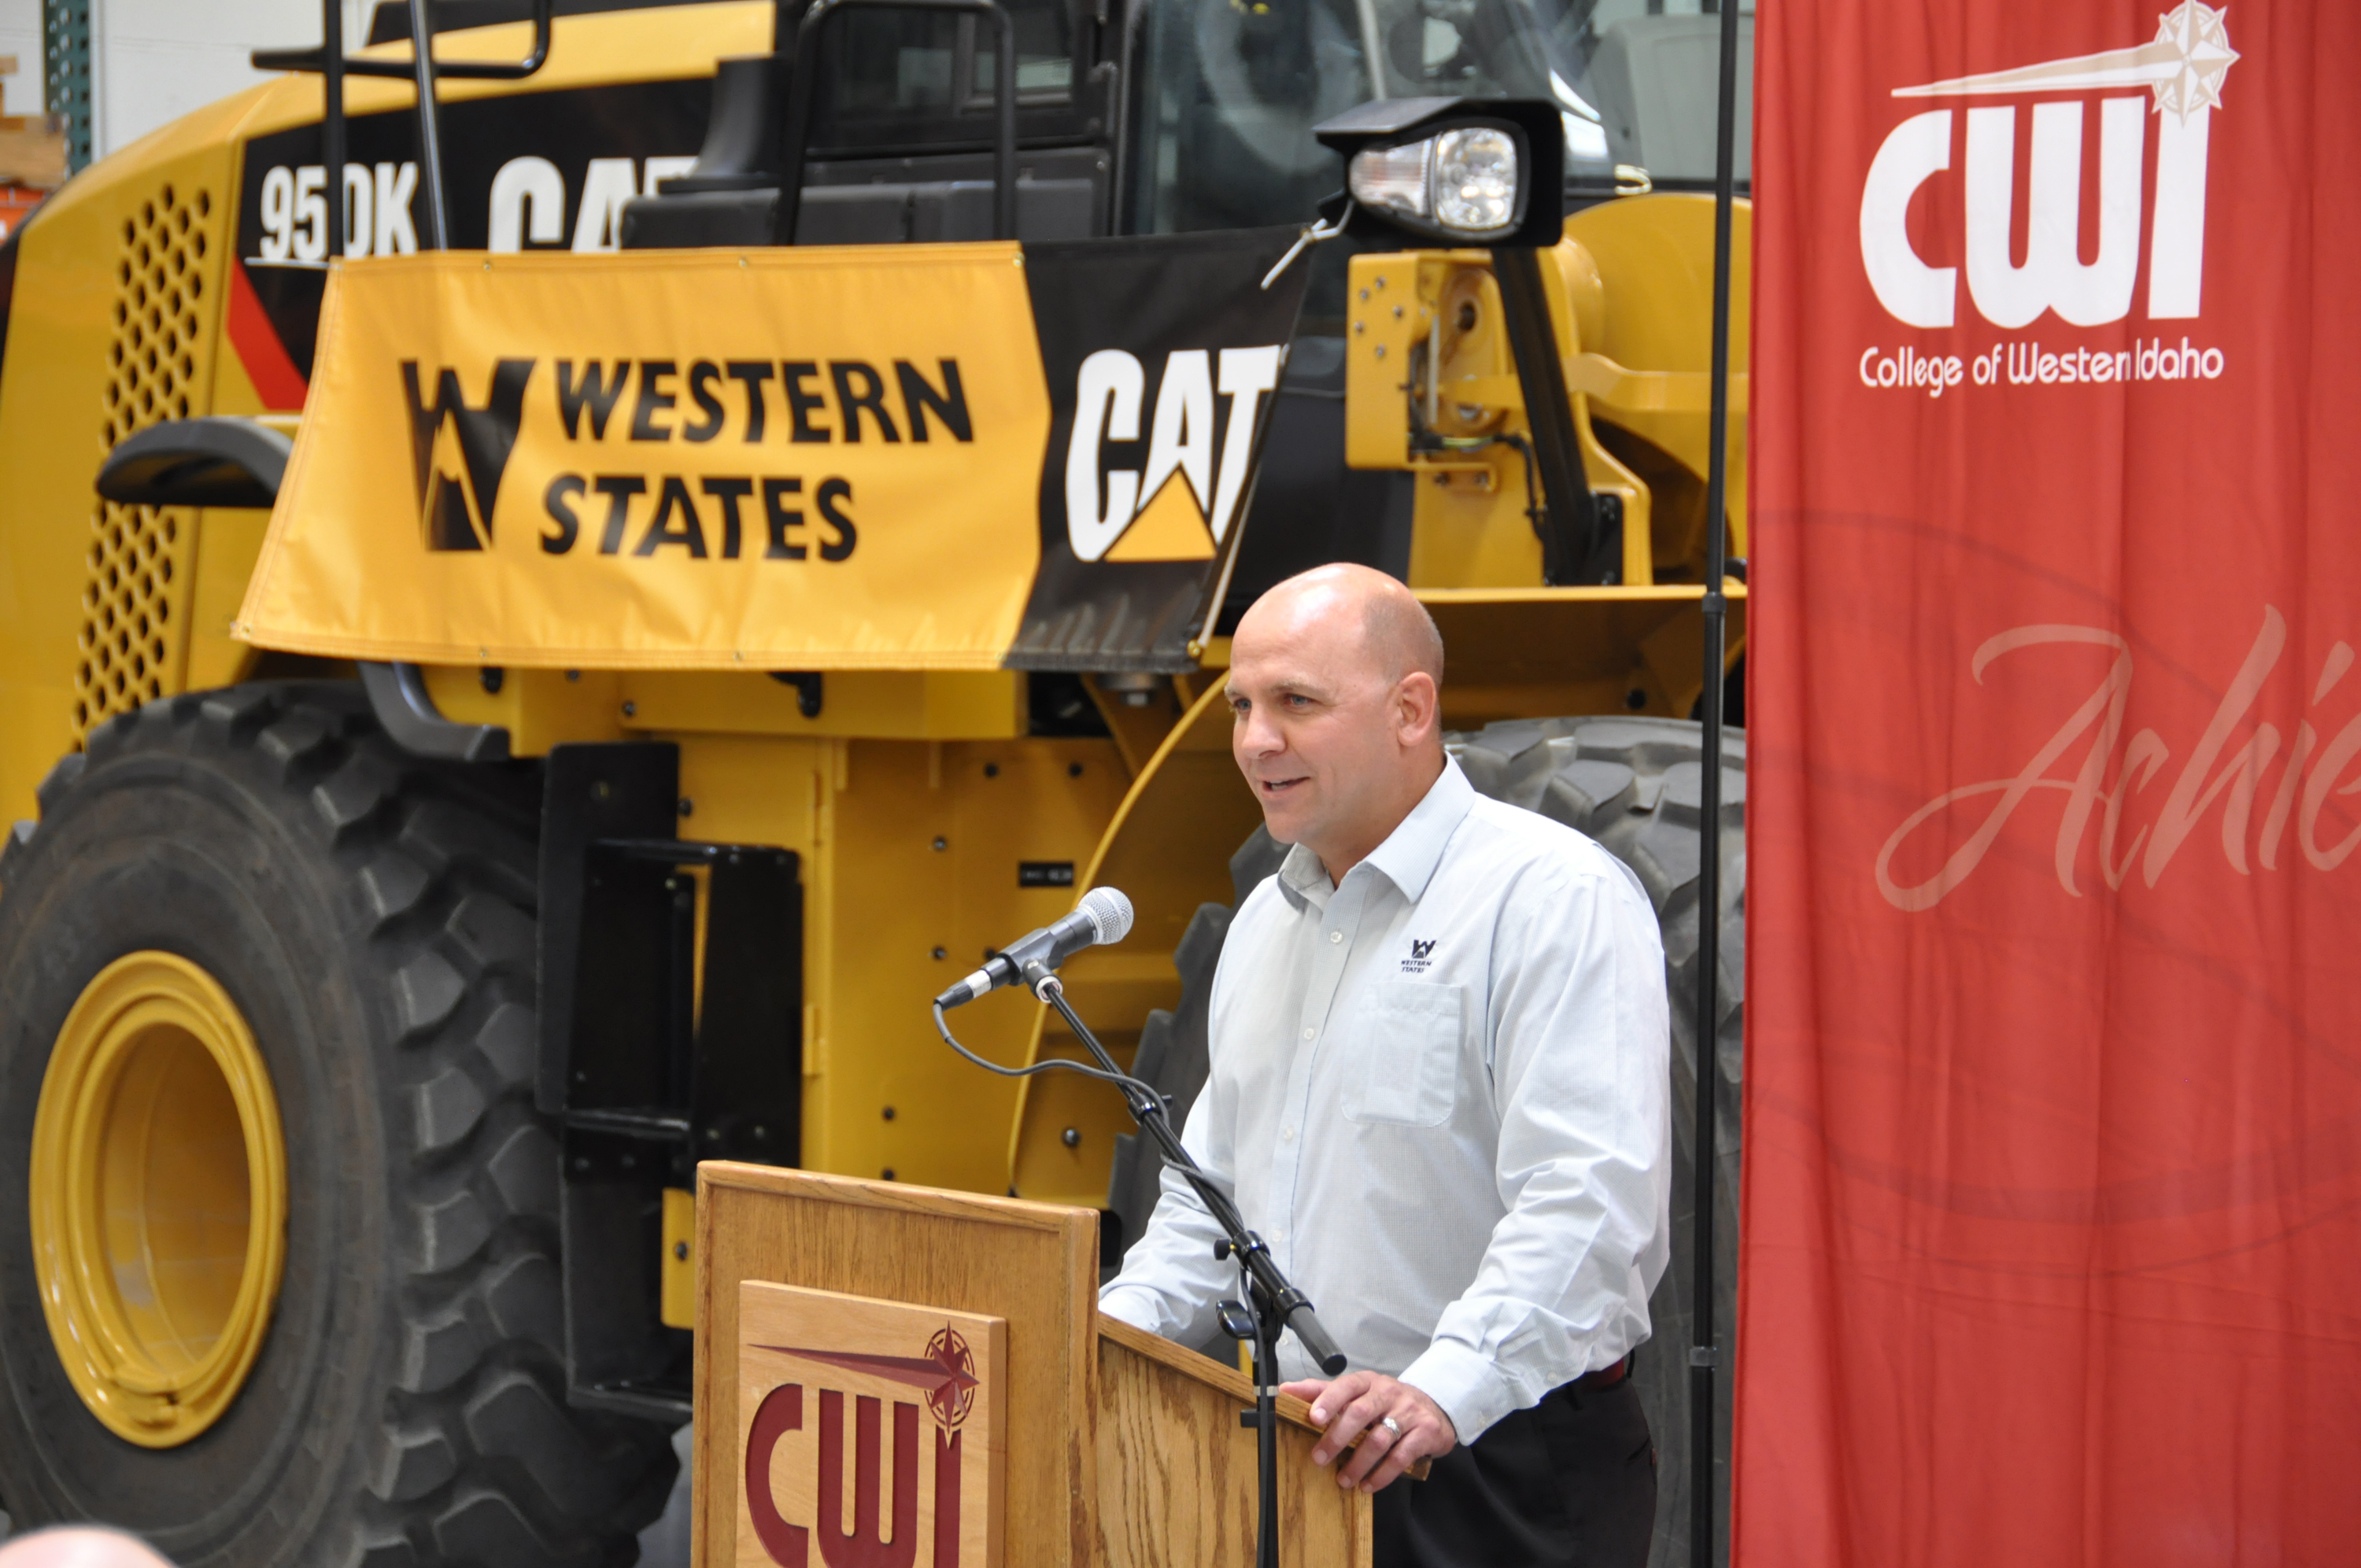 PHOTOS: CWI and Western States CAT Celebrate Partnership | CWI